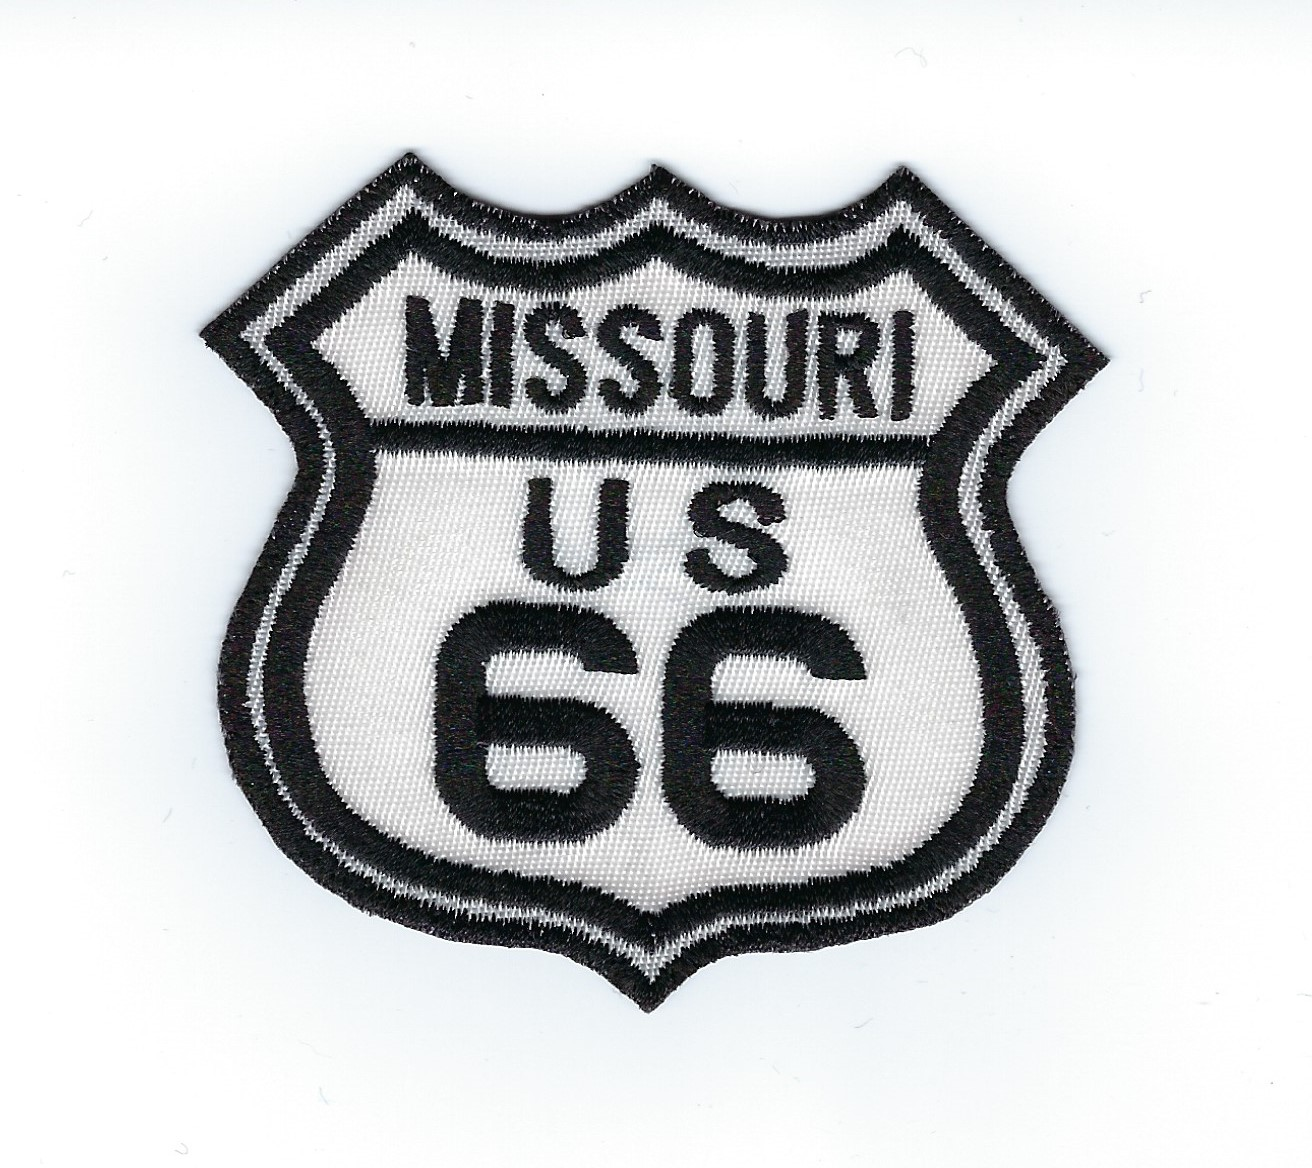 "Route 66 Missouri US patch, black & white street sign design, 3"" x 2.8"""